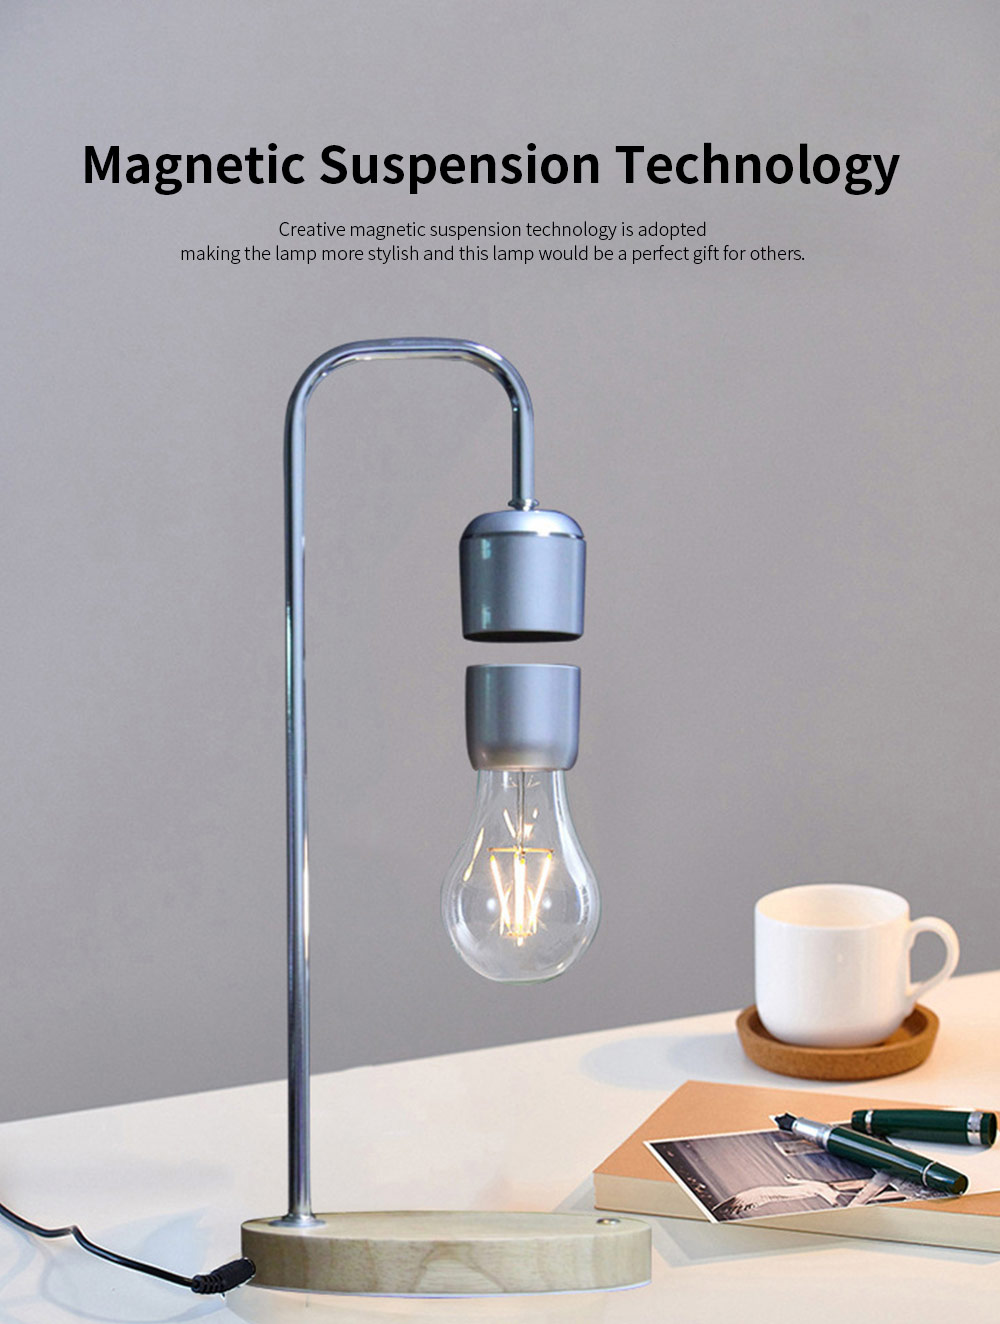 Creative Stylish Energy-conservation Mute Magnetic Suspension Light Table Lamp with Inductive Switch Anti-skid Base 1